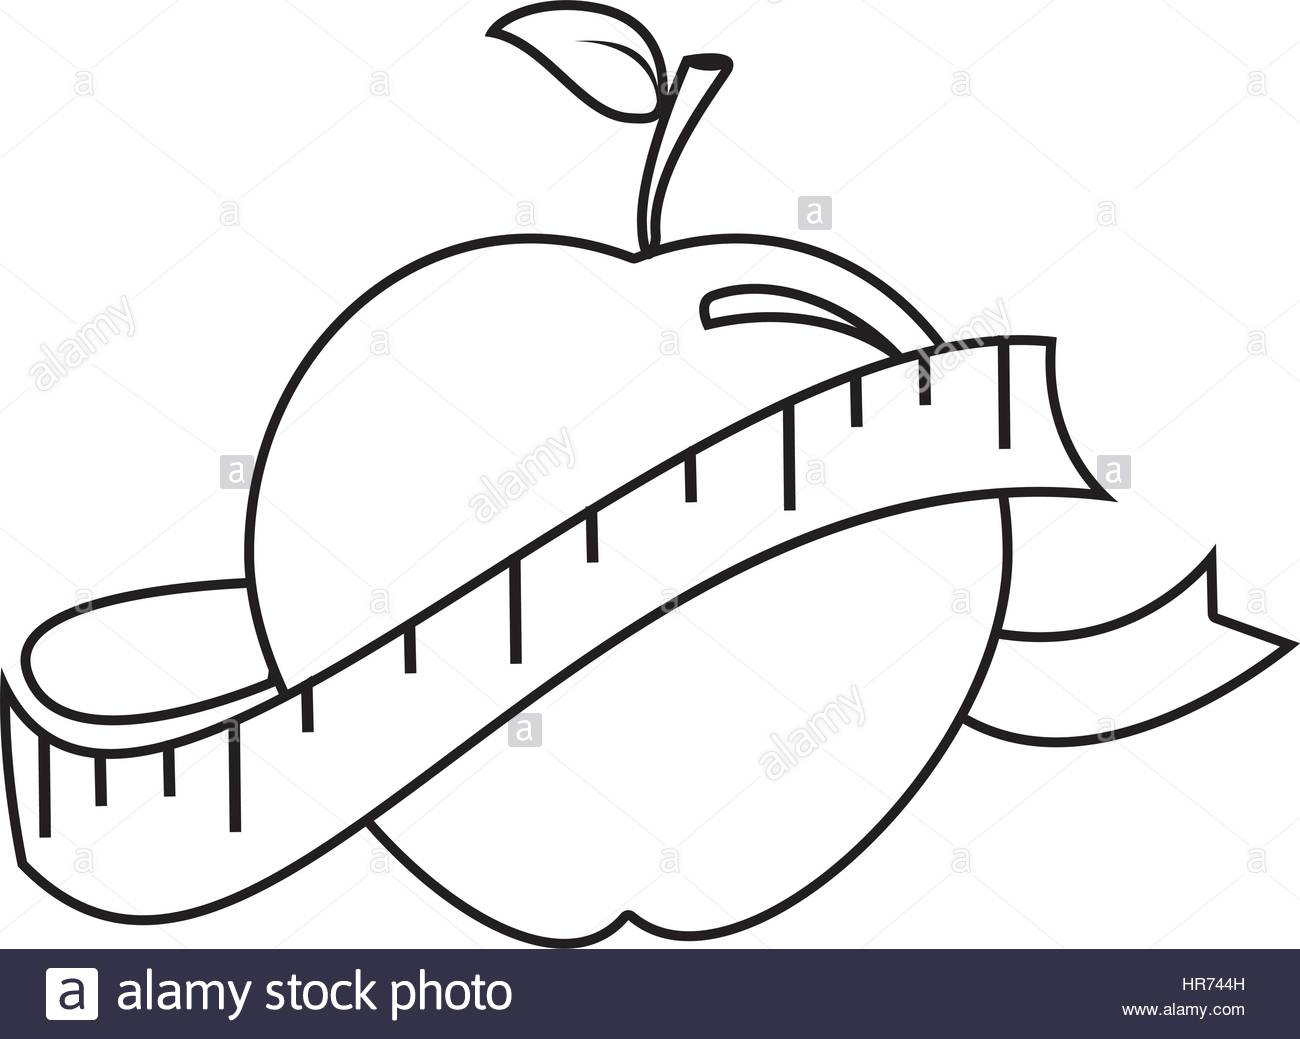 1300x1039 Silhouette With Apple And Measuring Tape Stock Vector Art